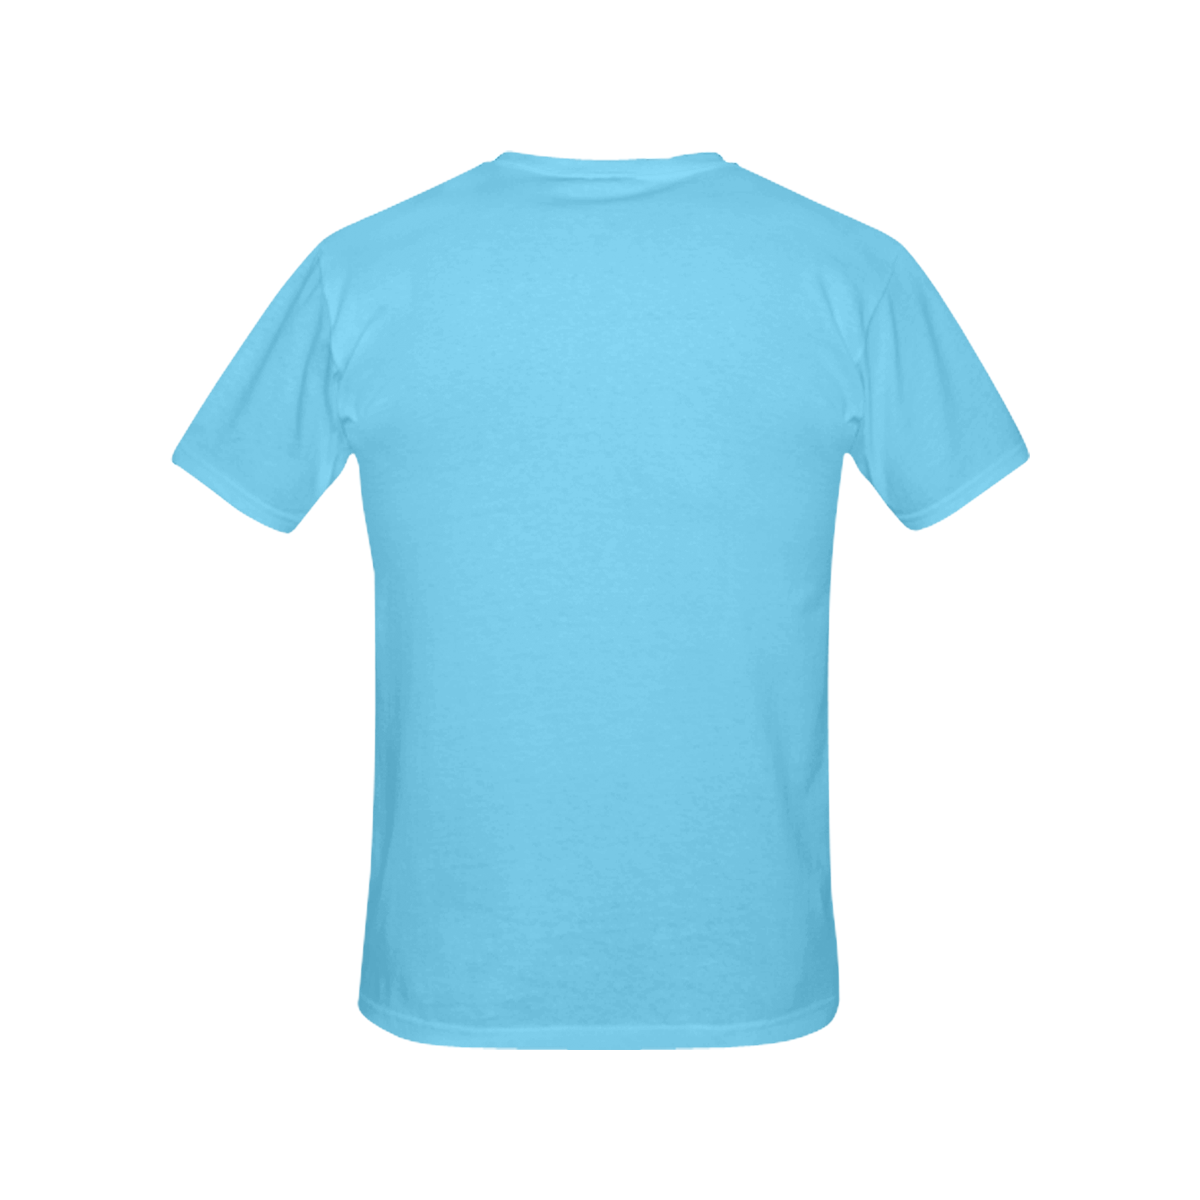 Blue All Over Print T-Shirt for Women (USA Size) (Model T40)